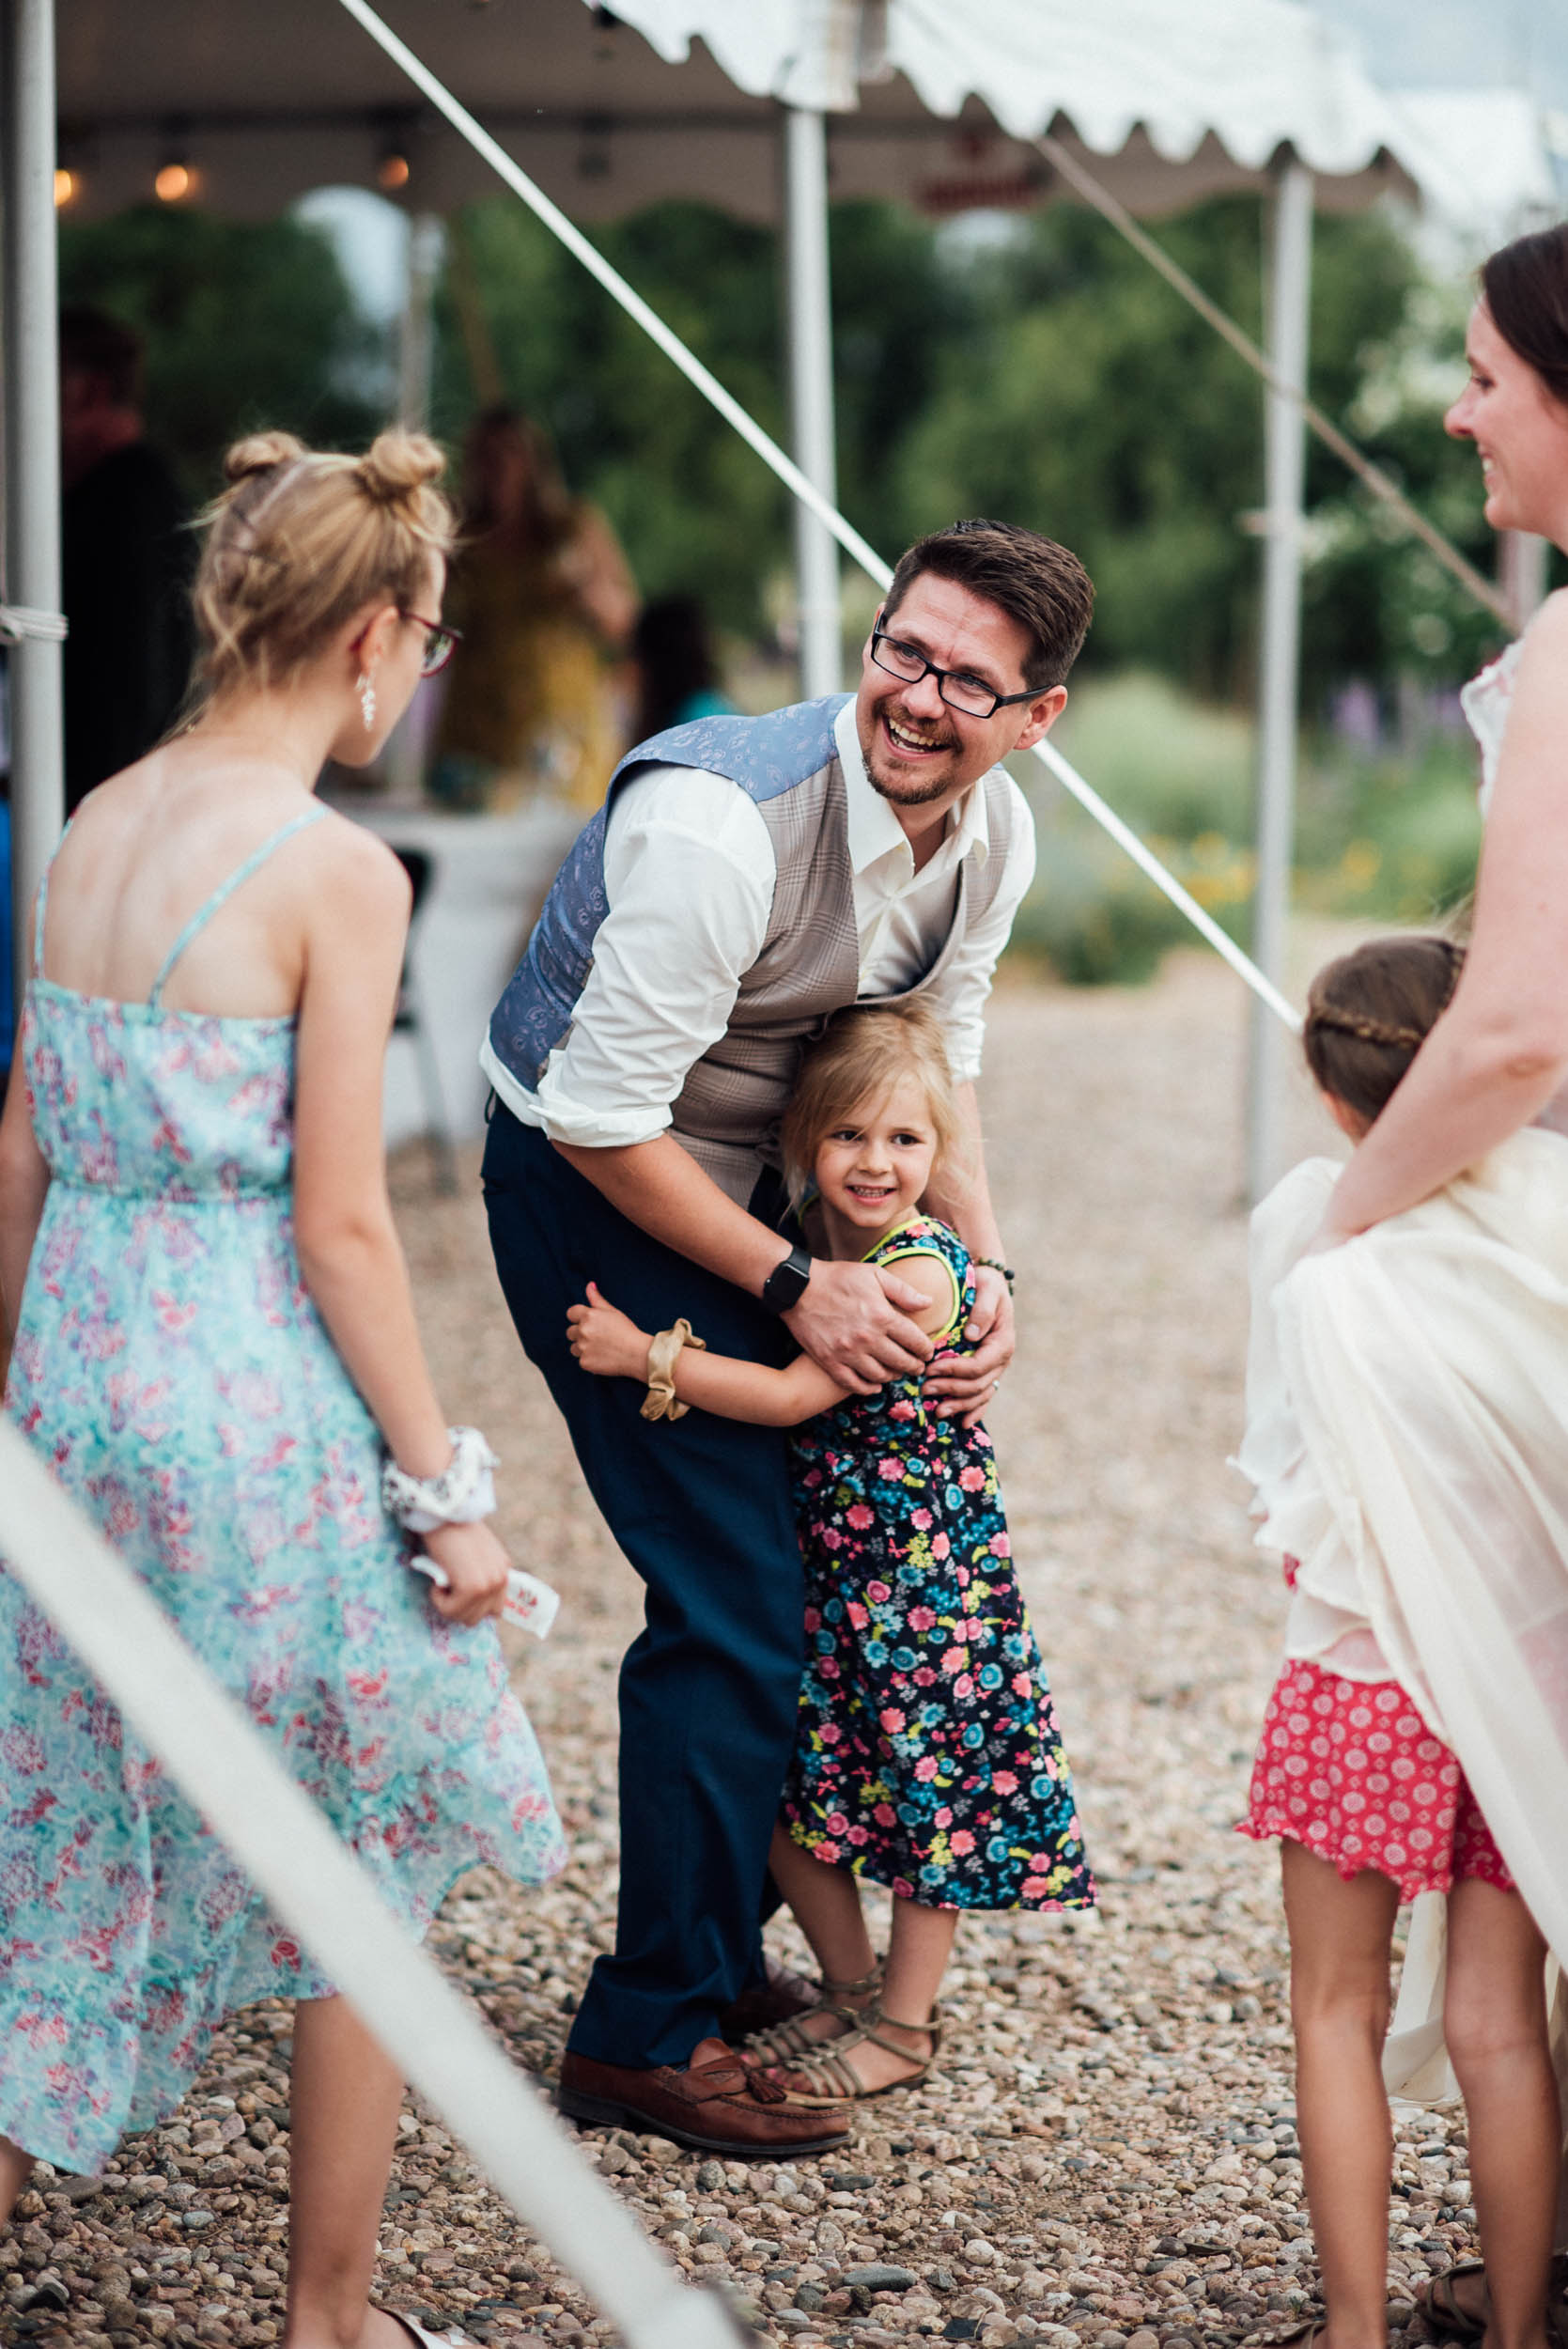 Colorado-Backyard-Wedding-Photographer-64.jpg